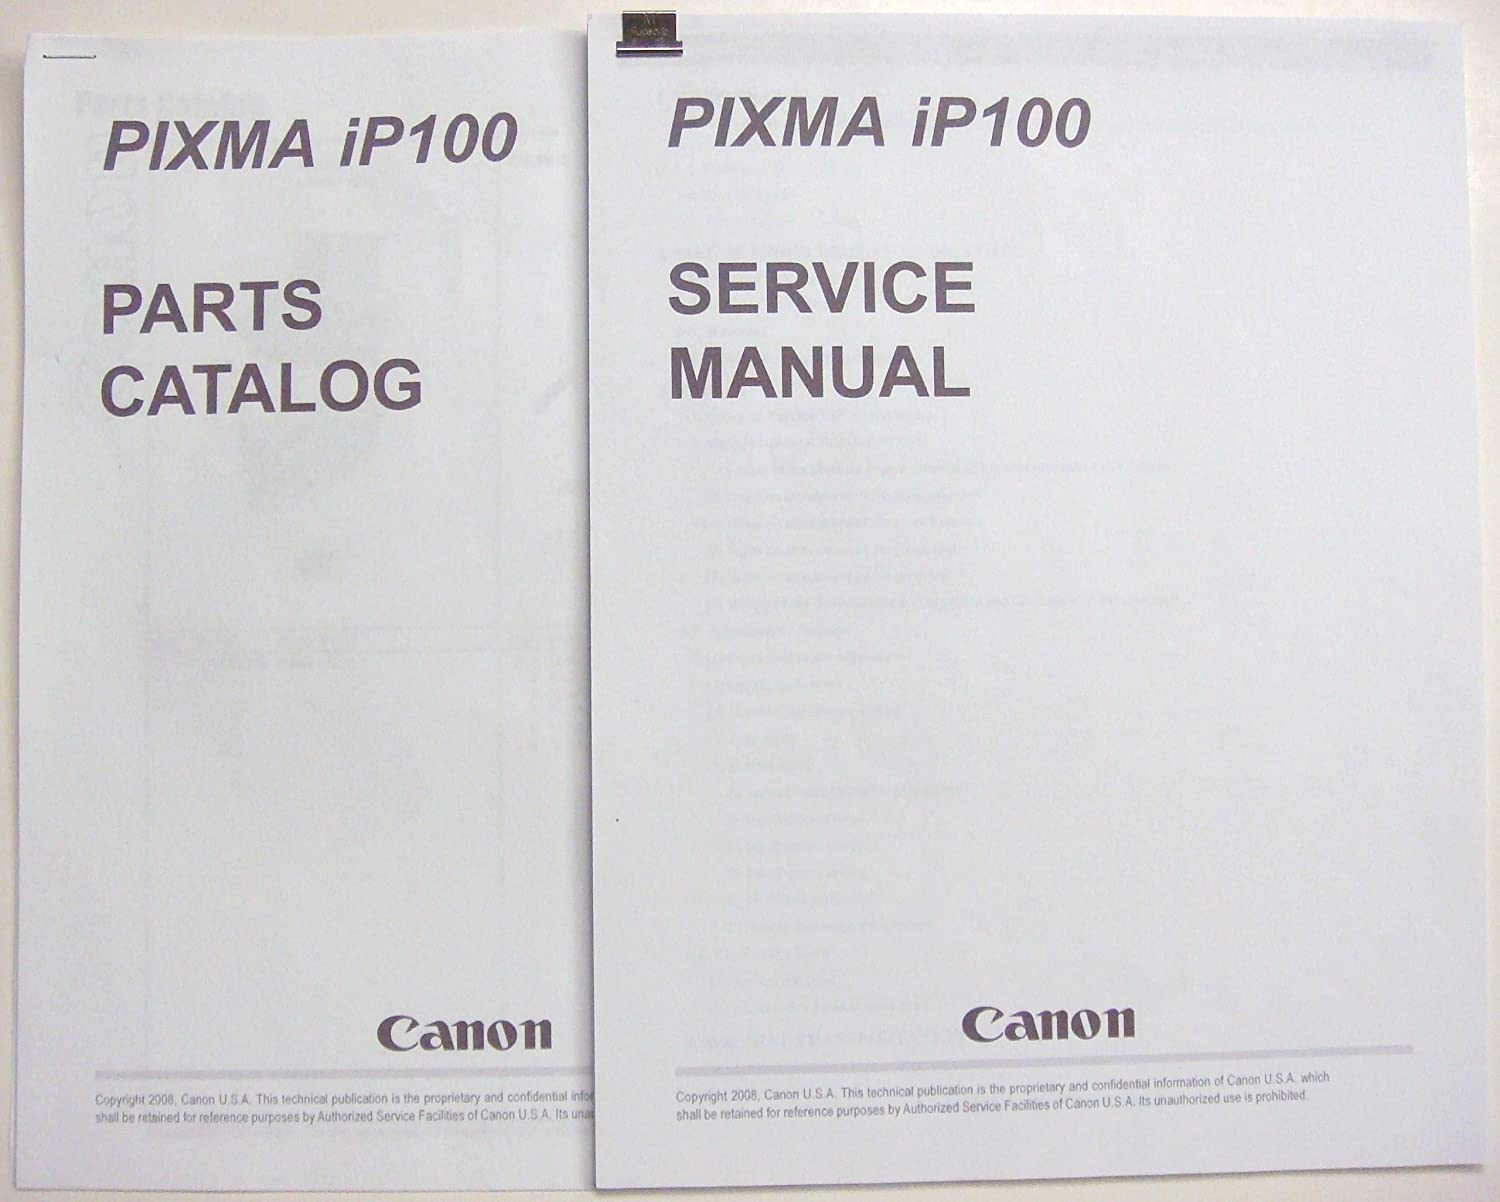 Canon pixma ip100 photo printer download instruction manual pdf.